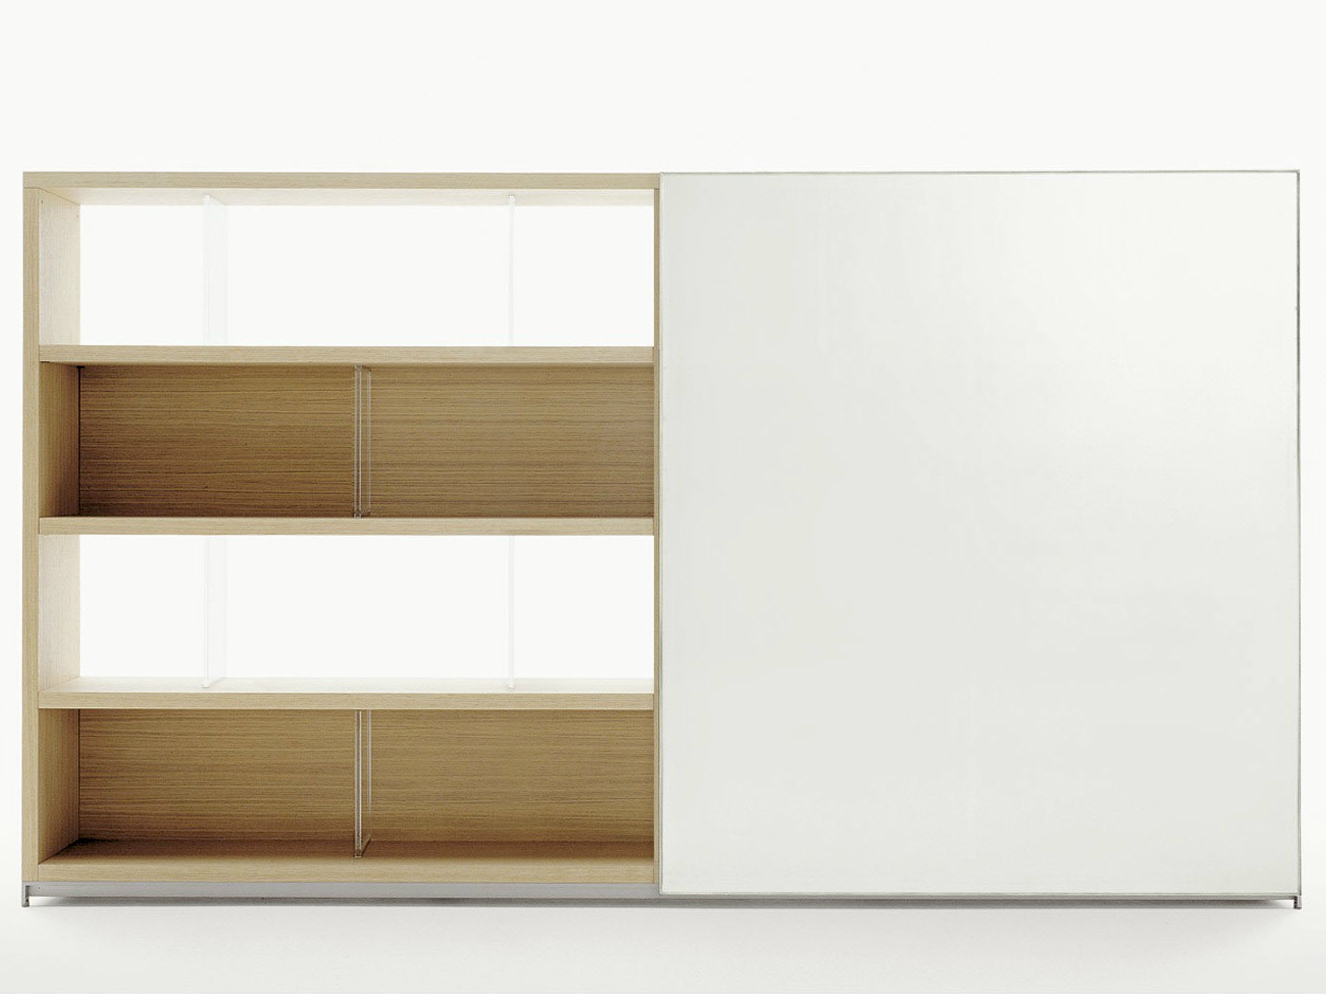 Wonderful image of  wooden bookcase MIDA Bookcase Maxalto a brand of B&B Italia Spa with #462818 color and 1326x994 pixels